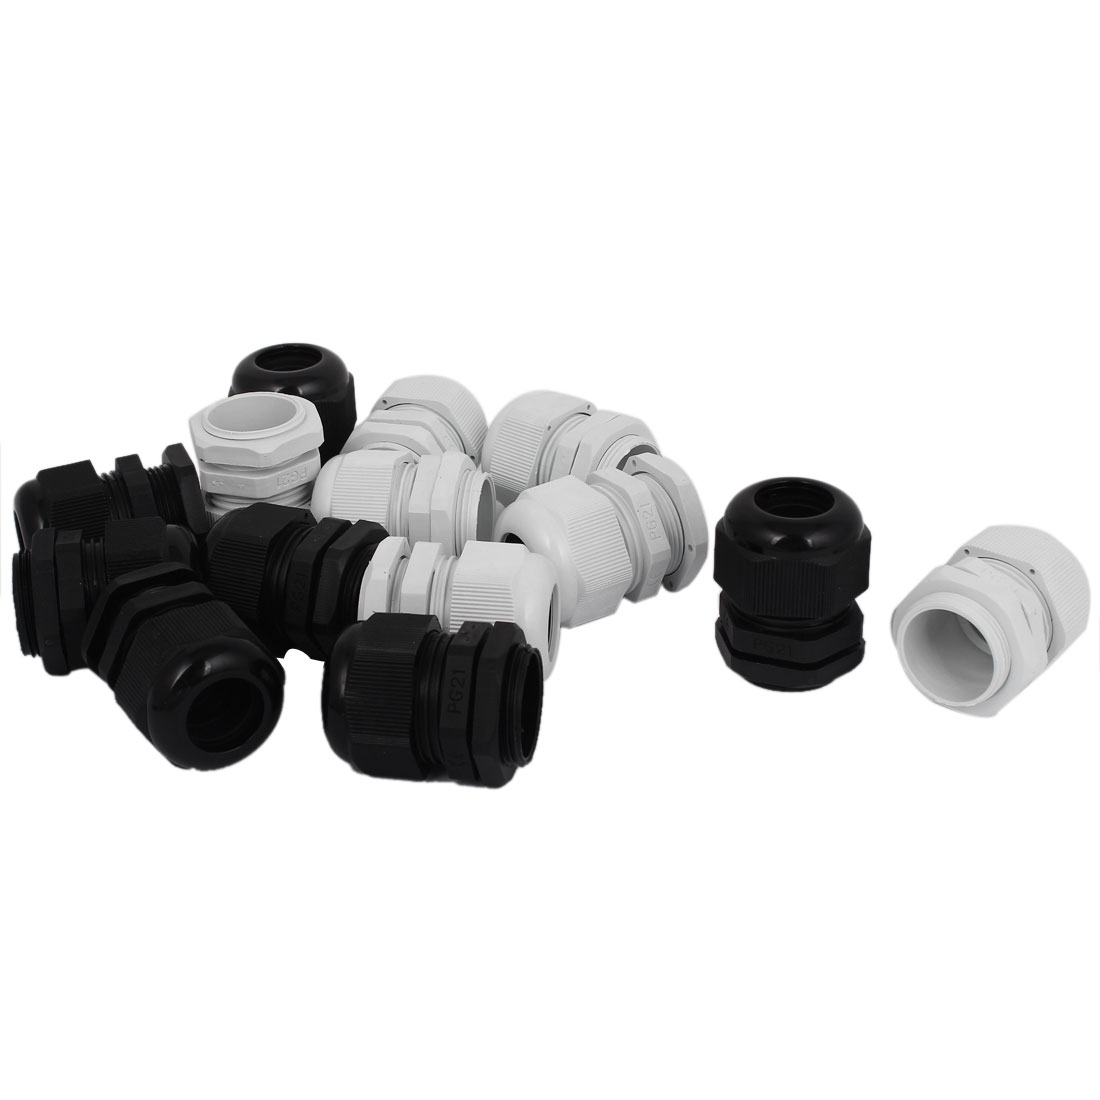 14Pcs PG21 16-21mm Splash Proof Cable Glands Black White